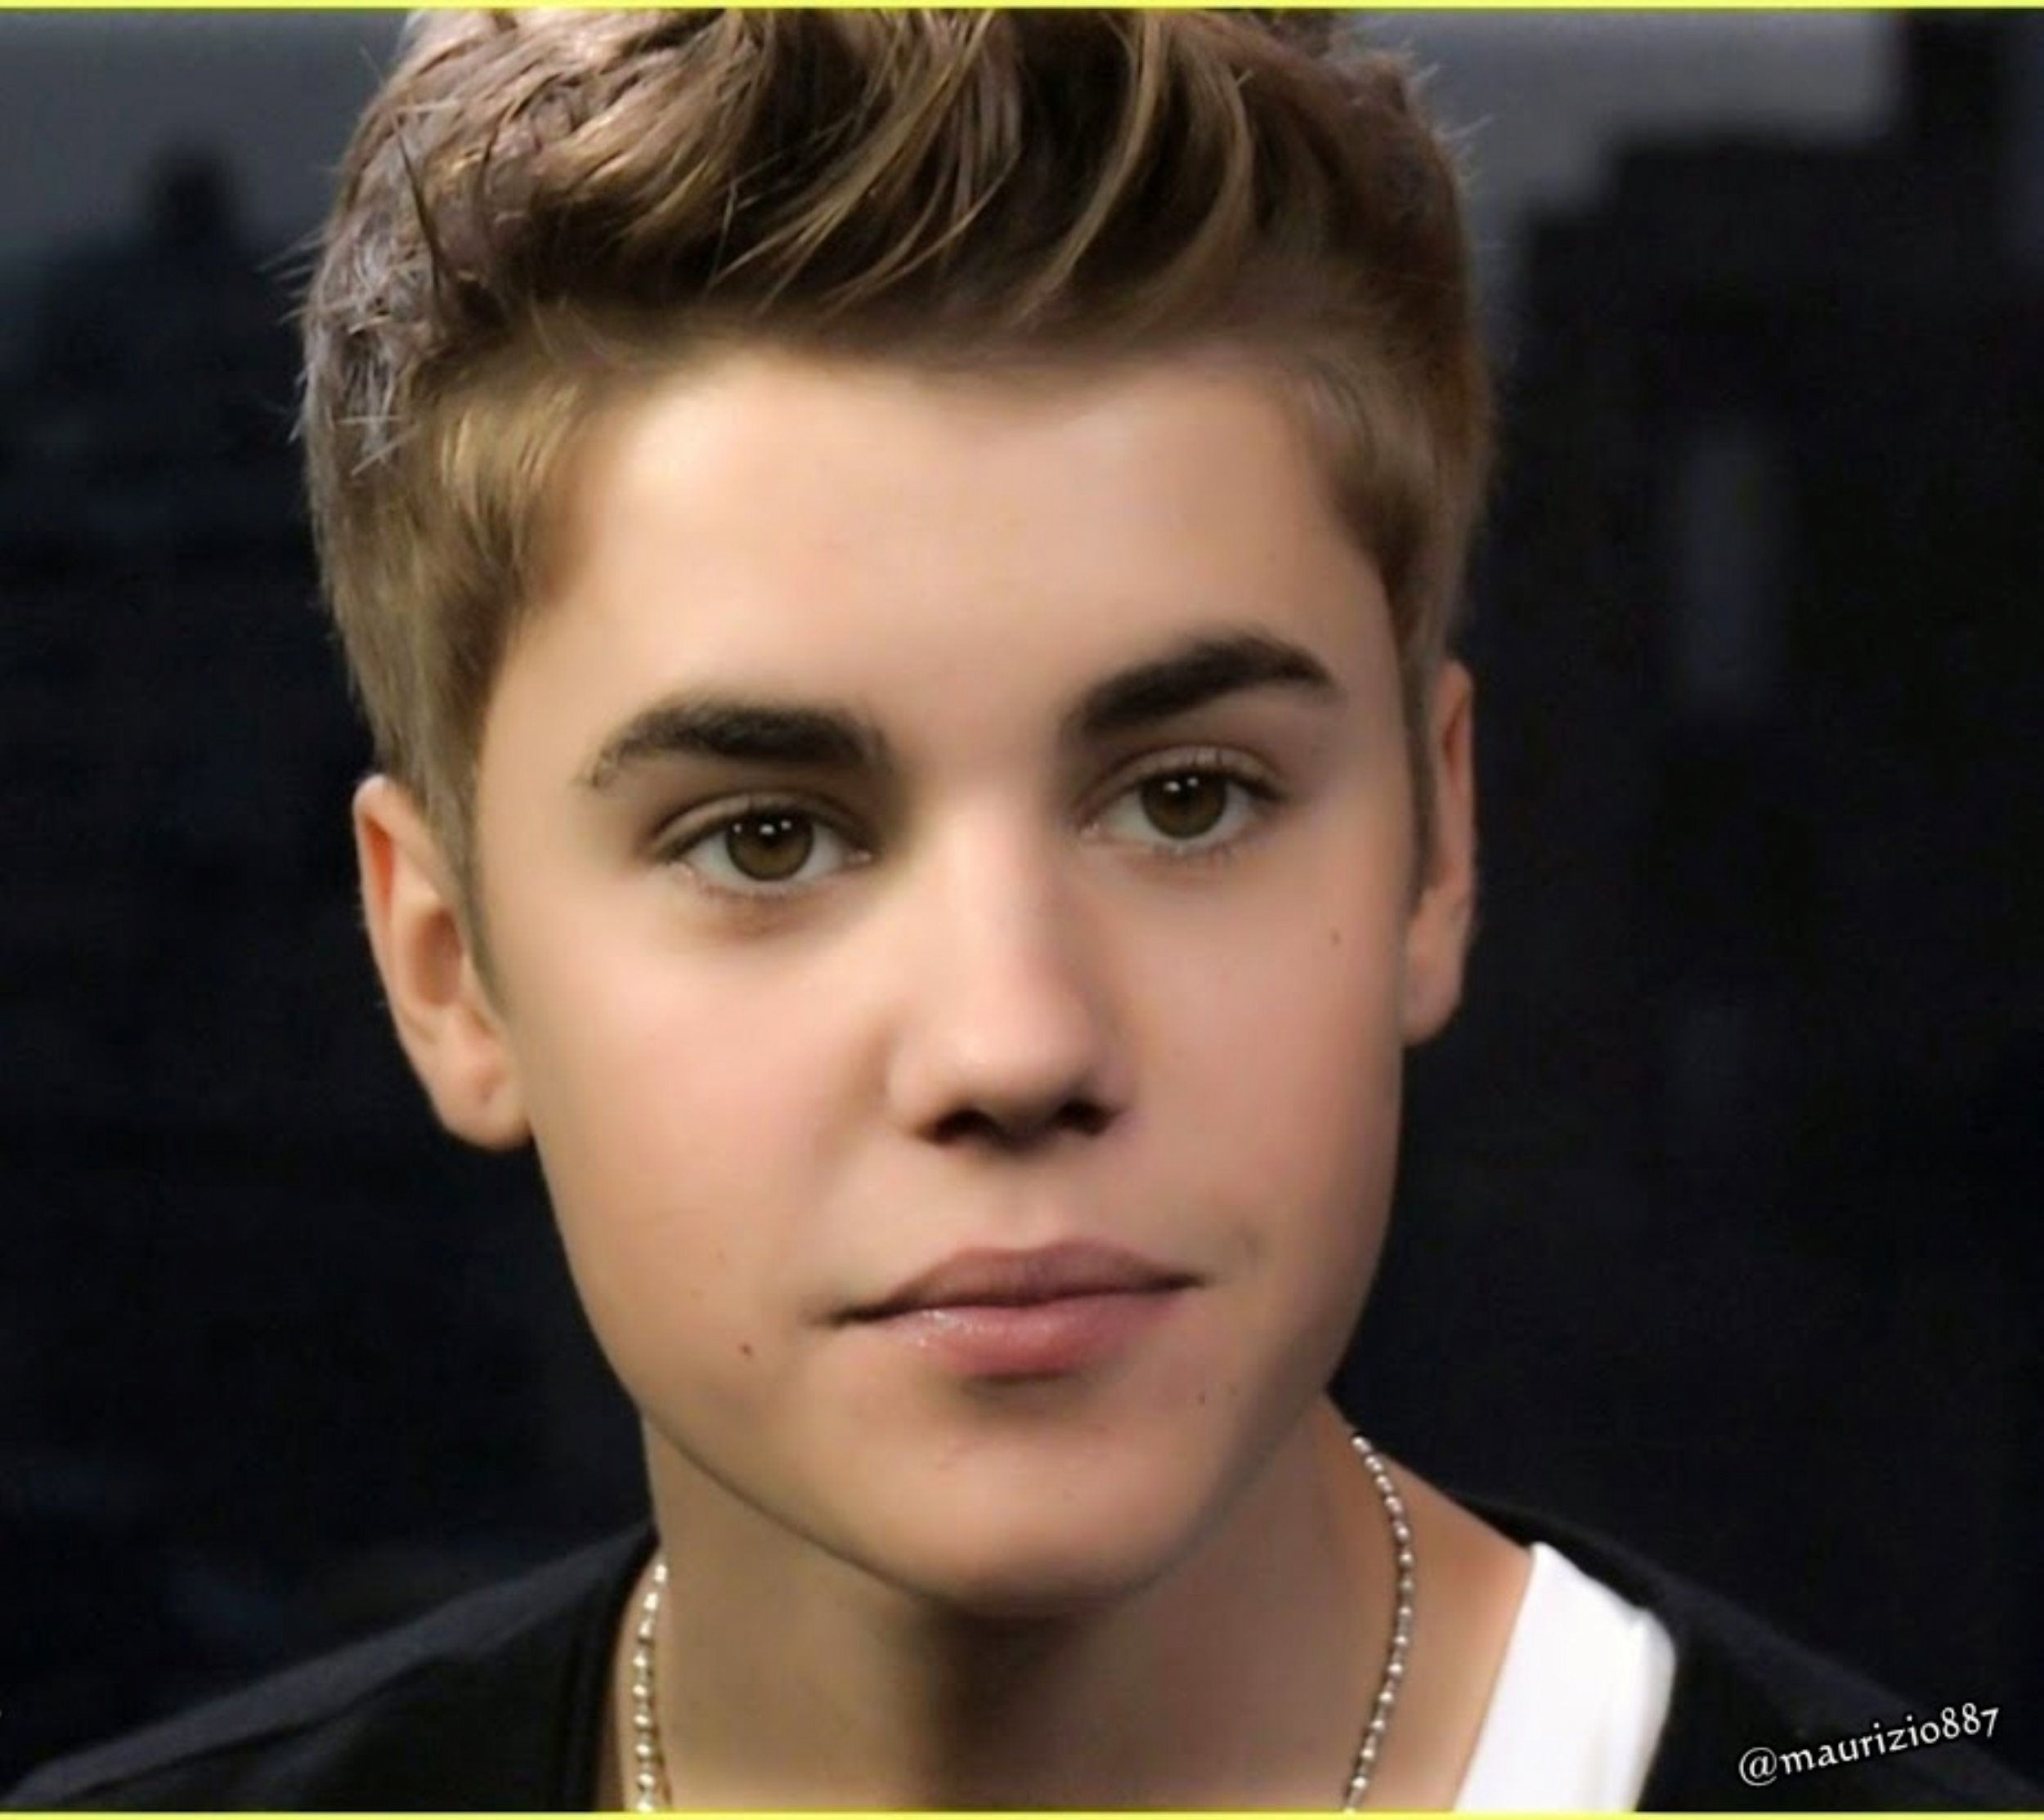 Who is justin bieber dating right now july 2011 9